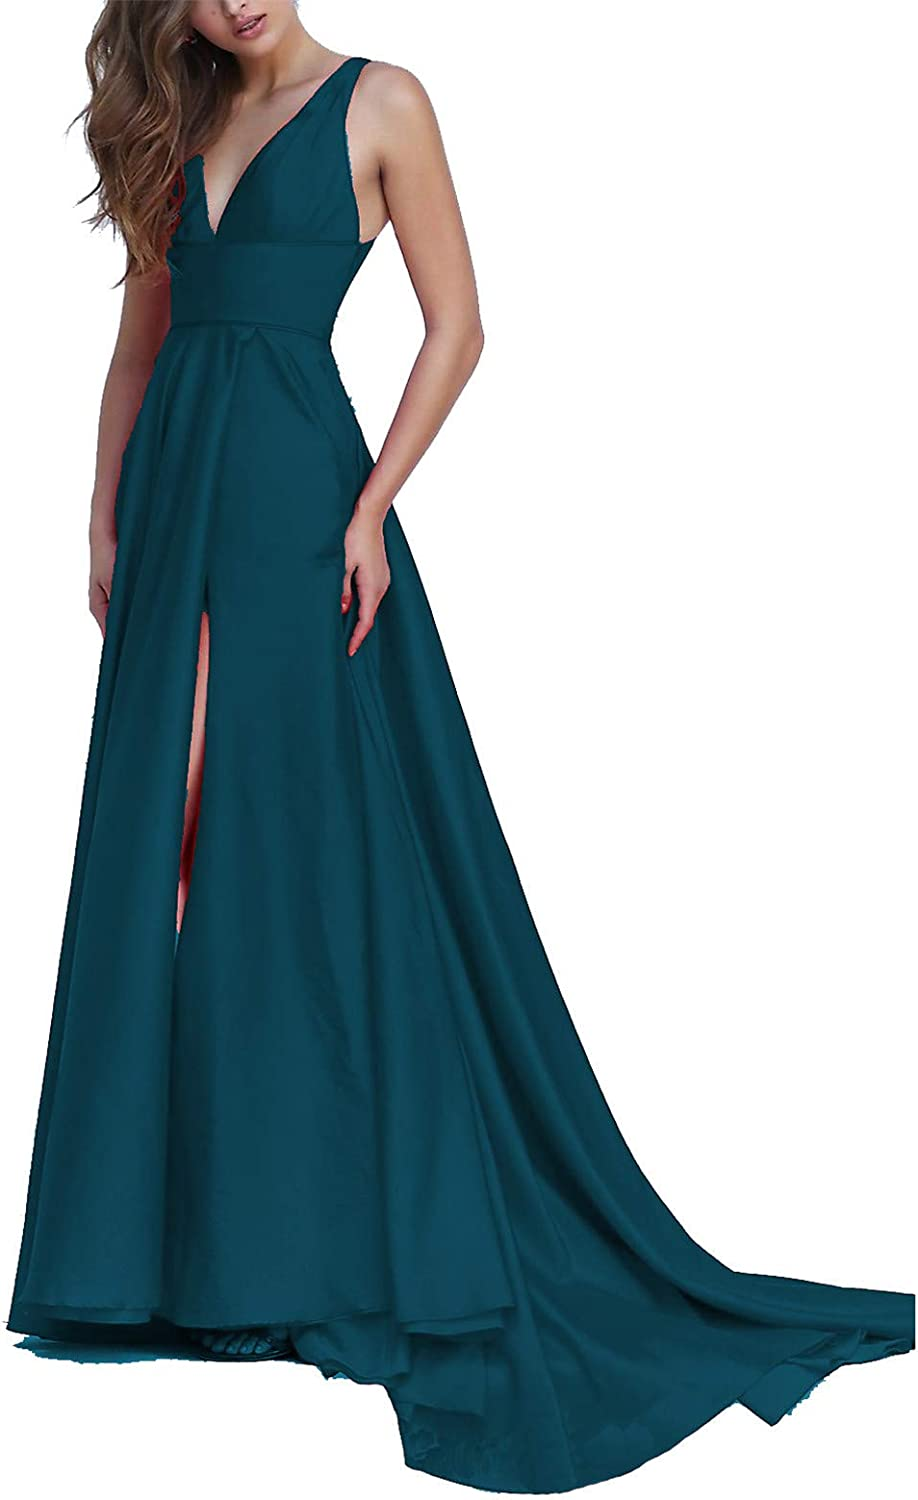 EverBeauty Womens Long Satin V Neck Prom Dresses Aline Evening Gown with Slit